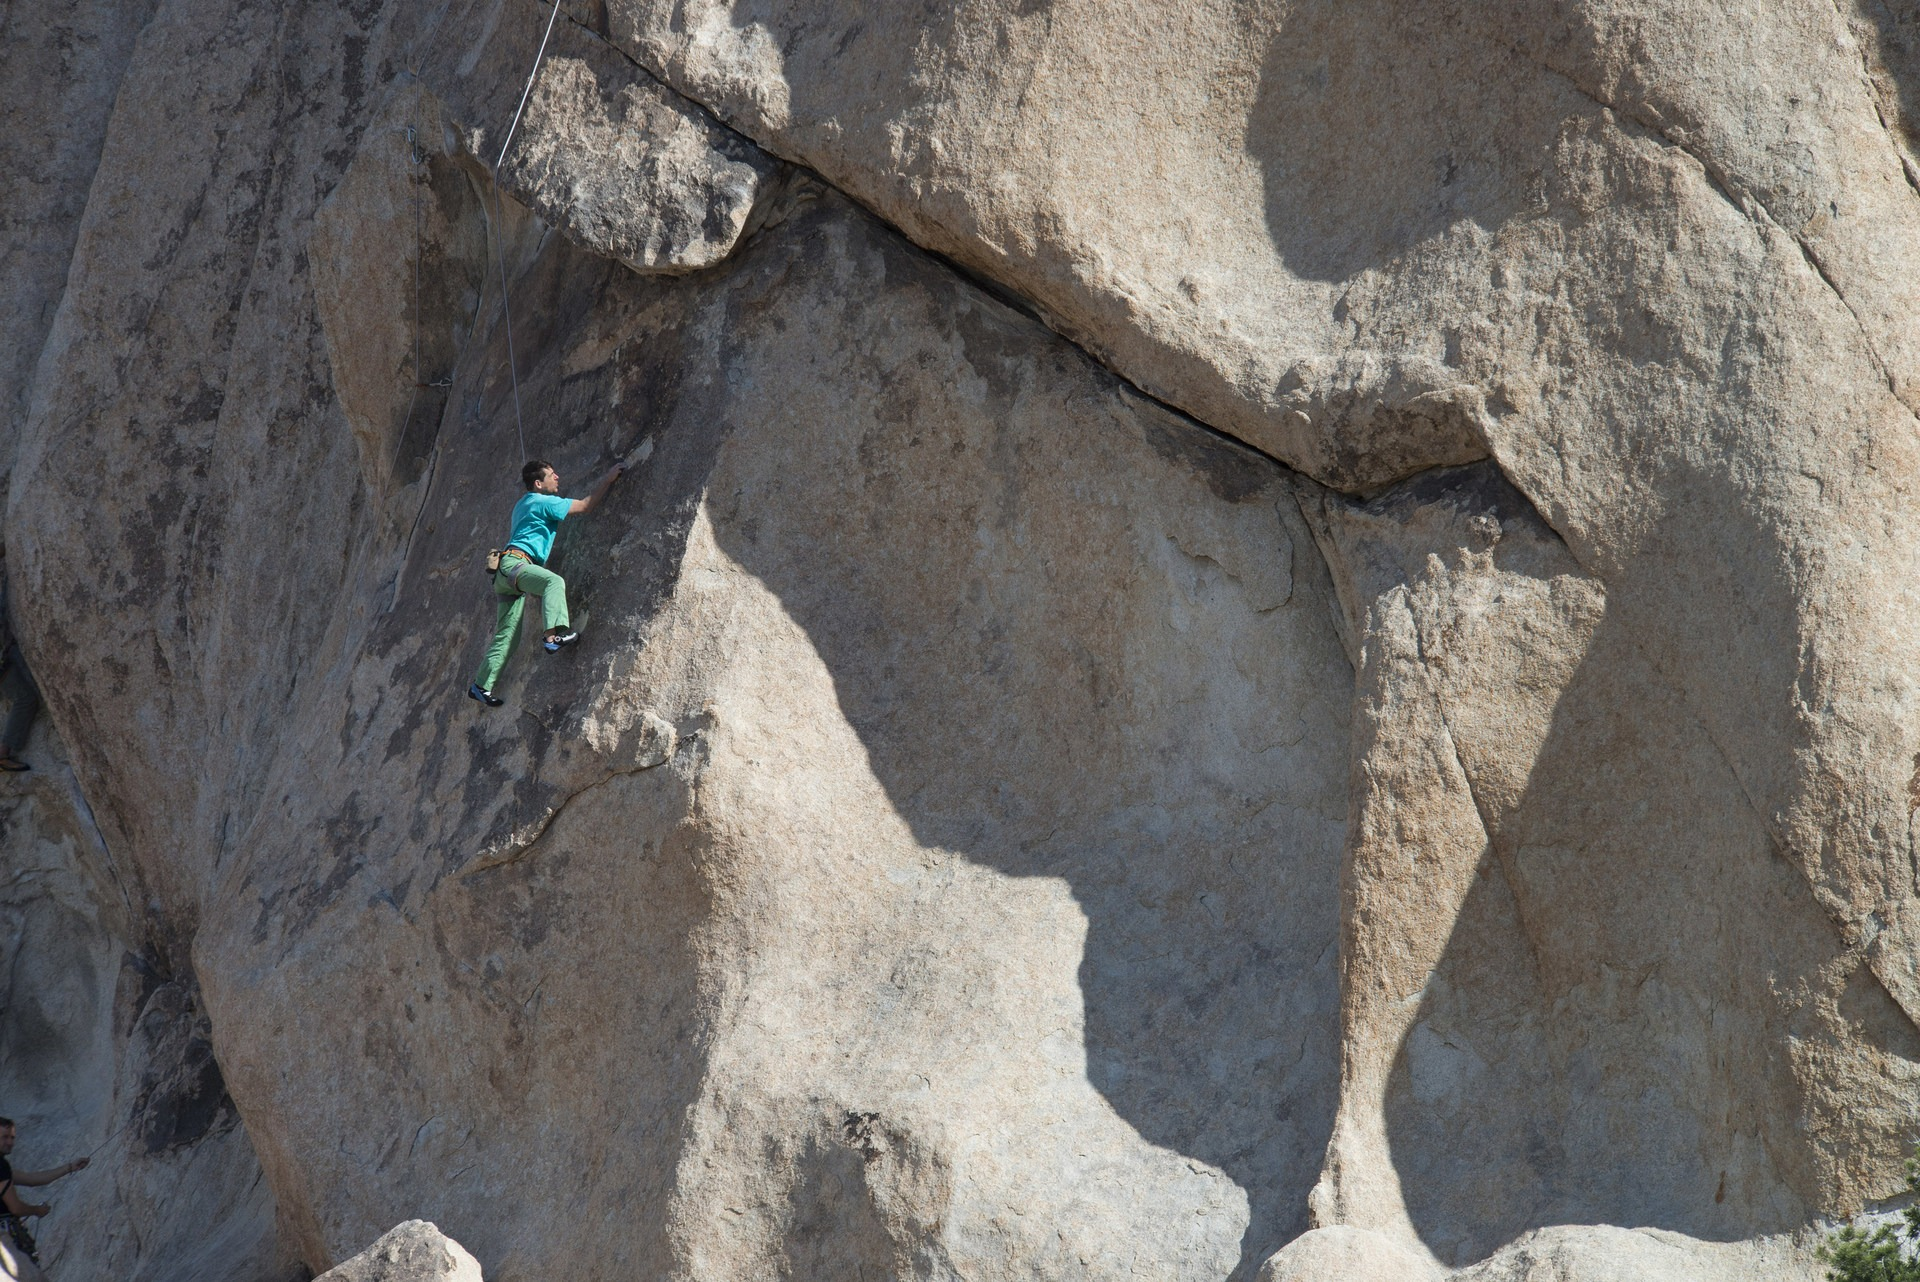 Old Woman Rock Climbing Crag Outdoor Project